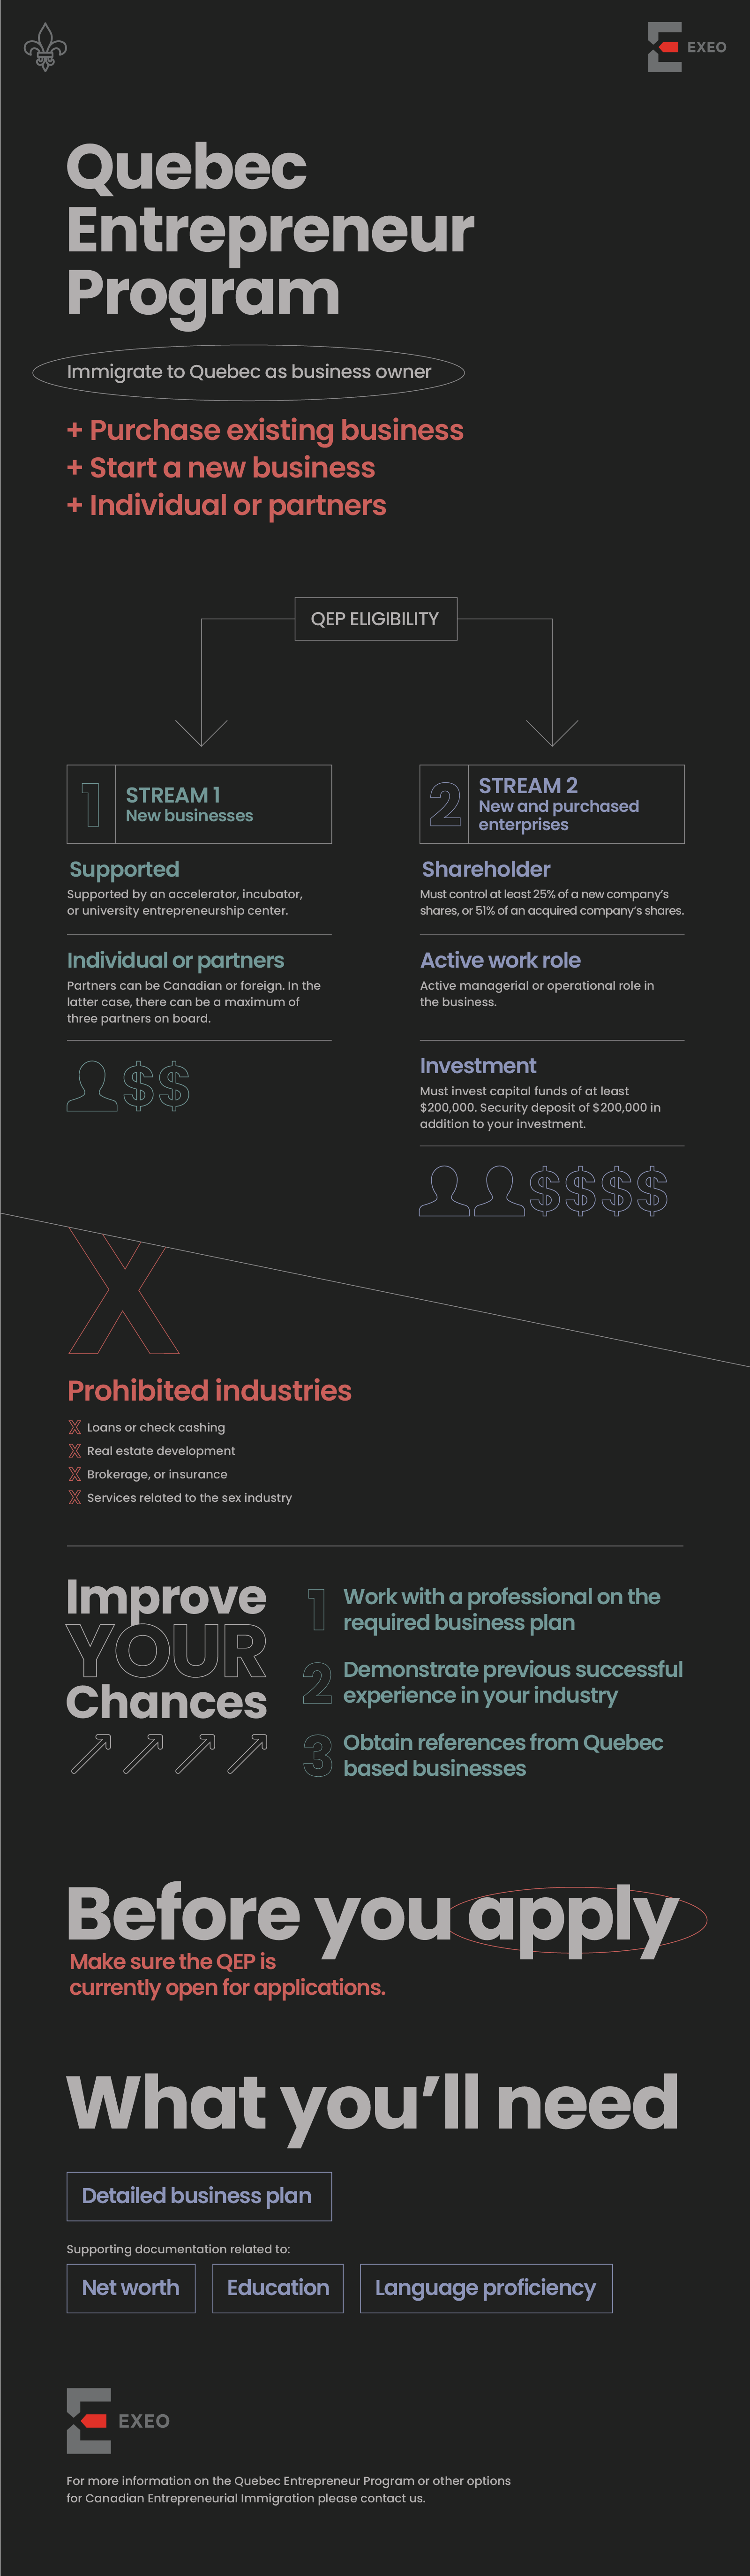 Quebec Entrepreneur Program Infographic